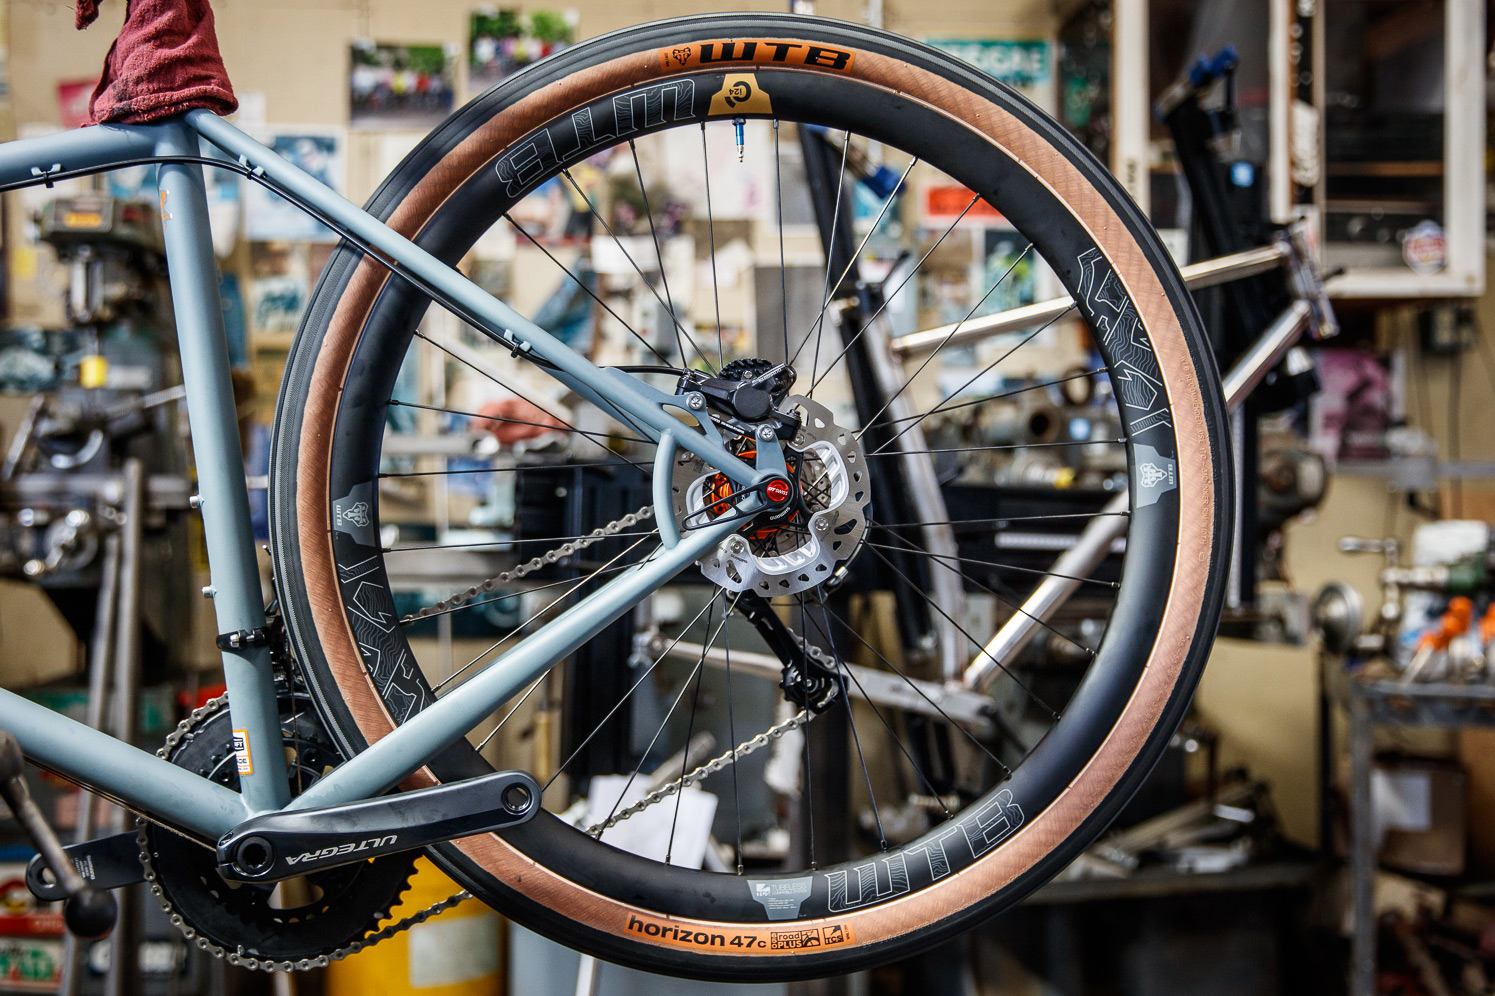 WTB-Horizon_Road-Plus_650B-47mm_all-road-asphalt-gravel-dirt-tire_Soulcraft-rear